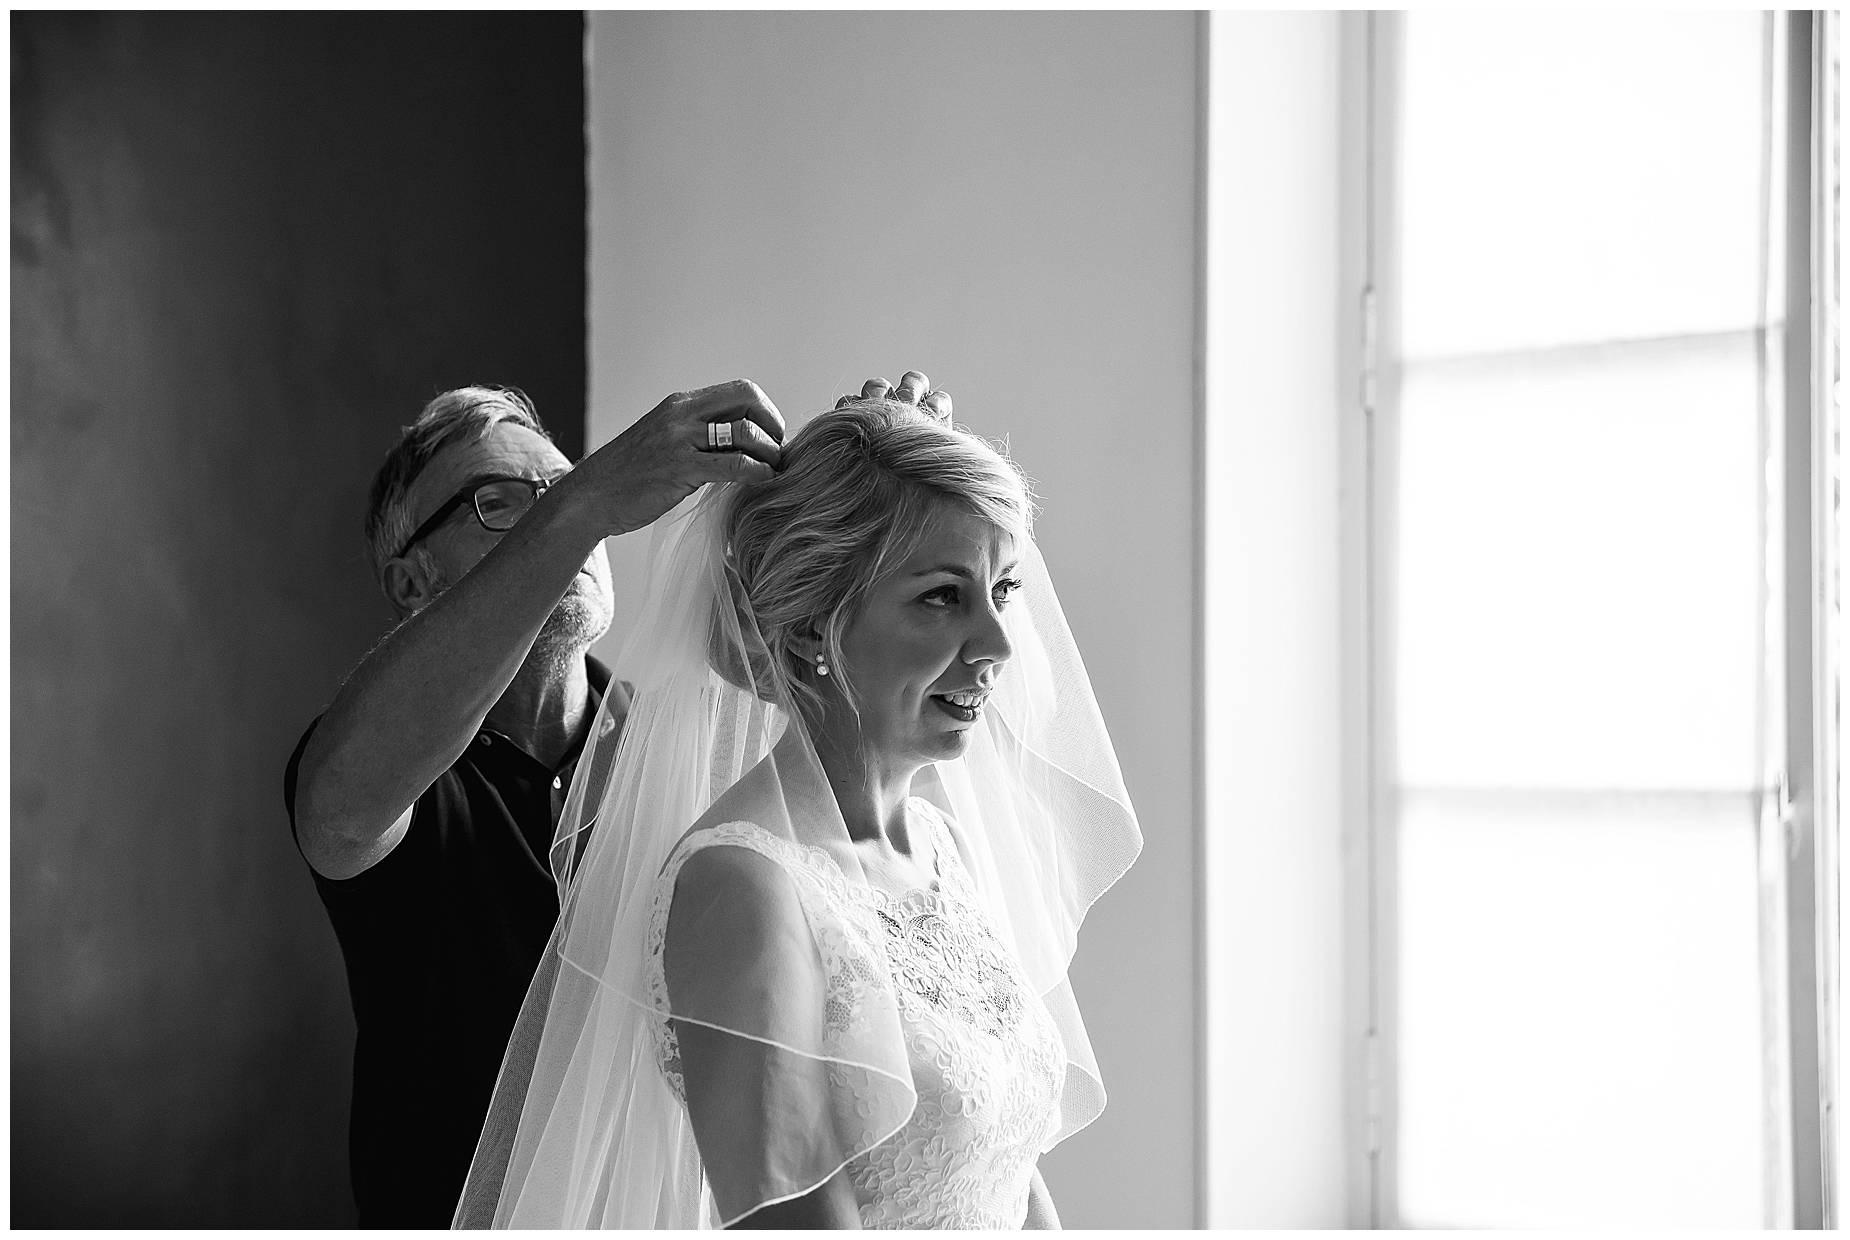 Veil being attached